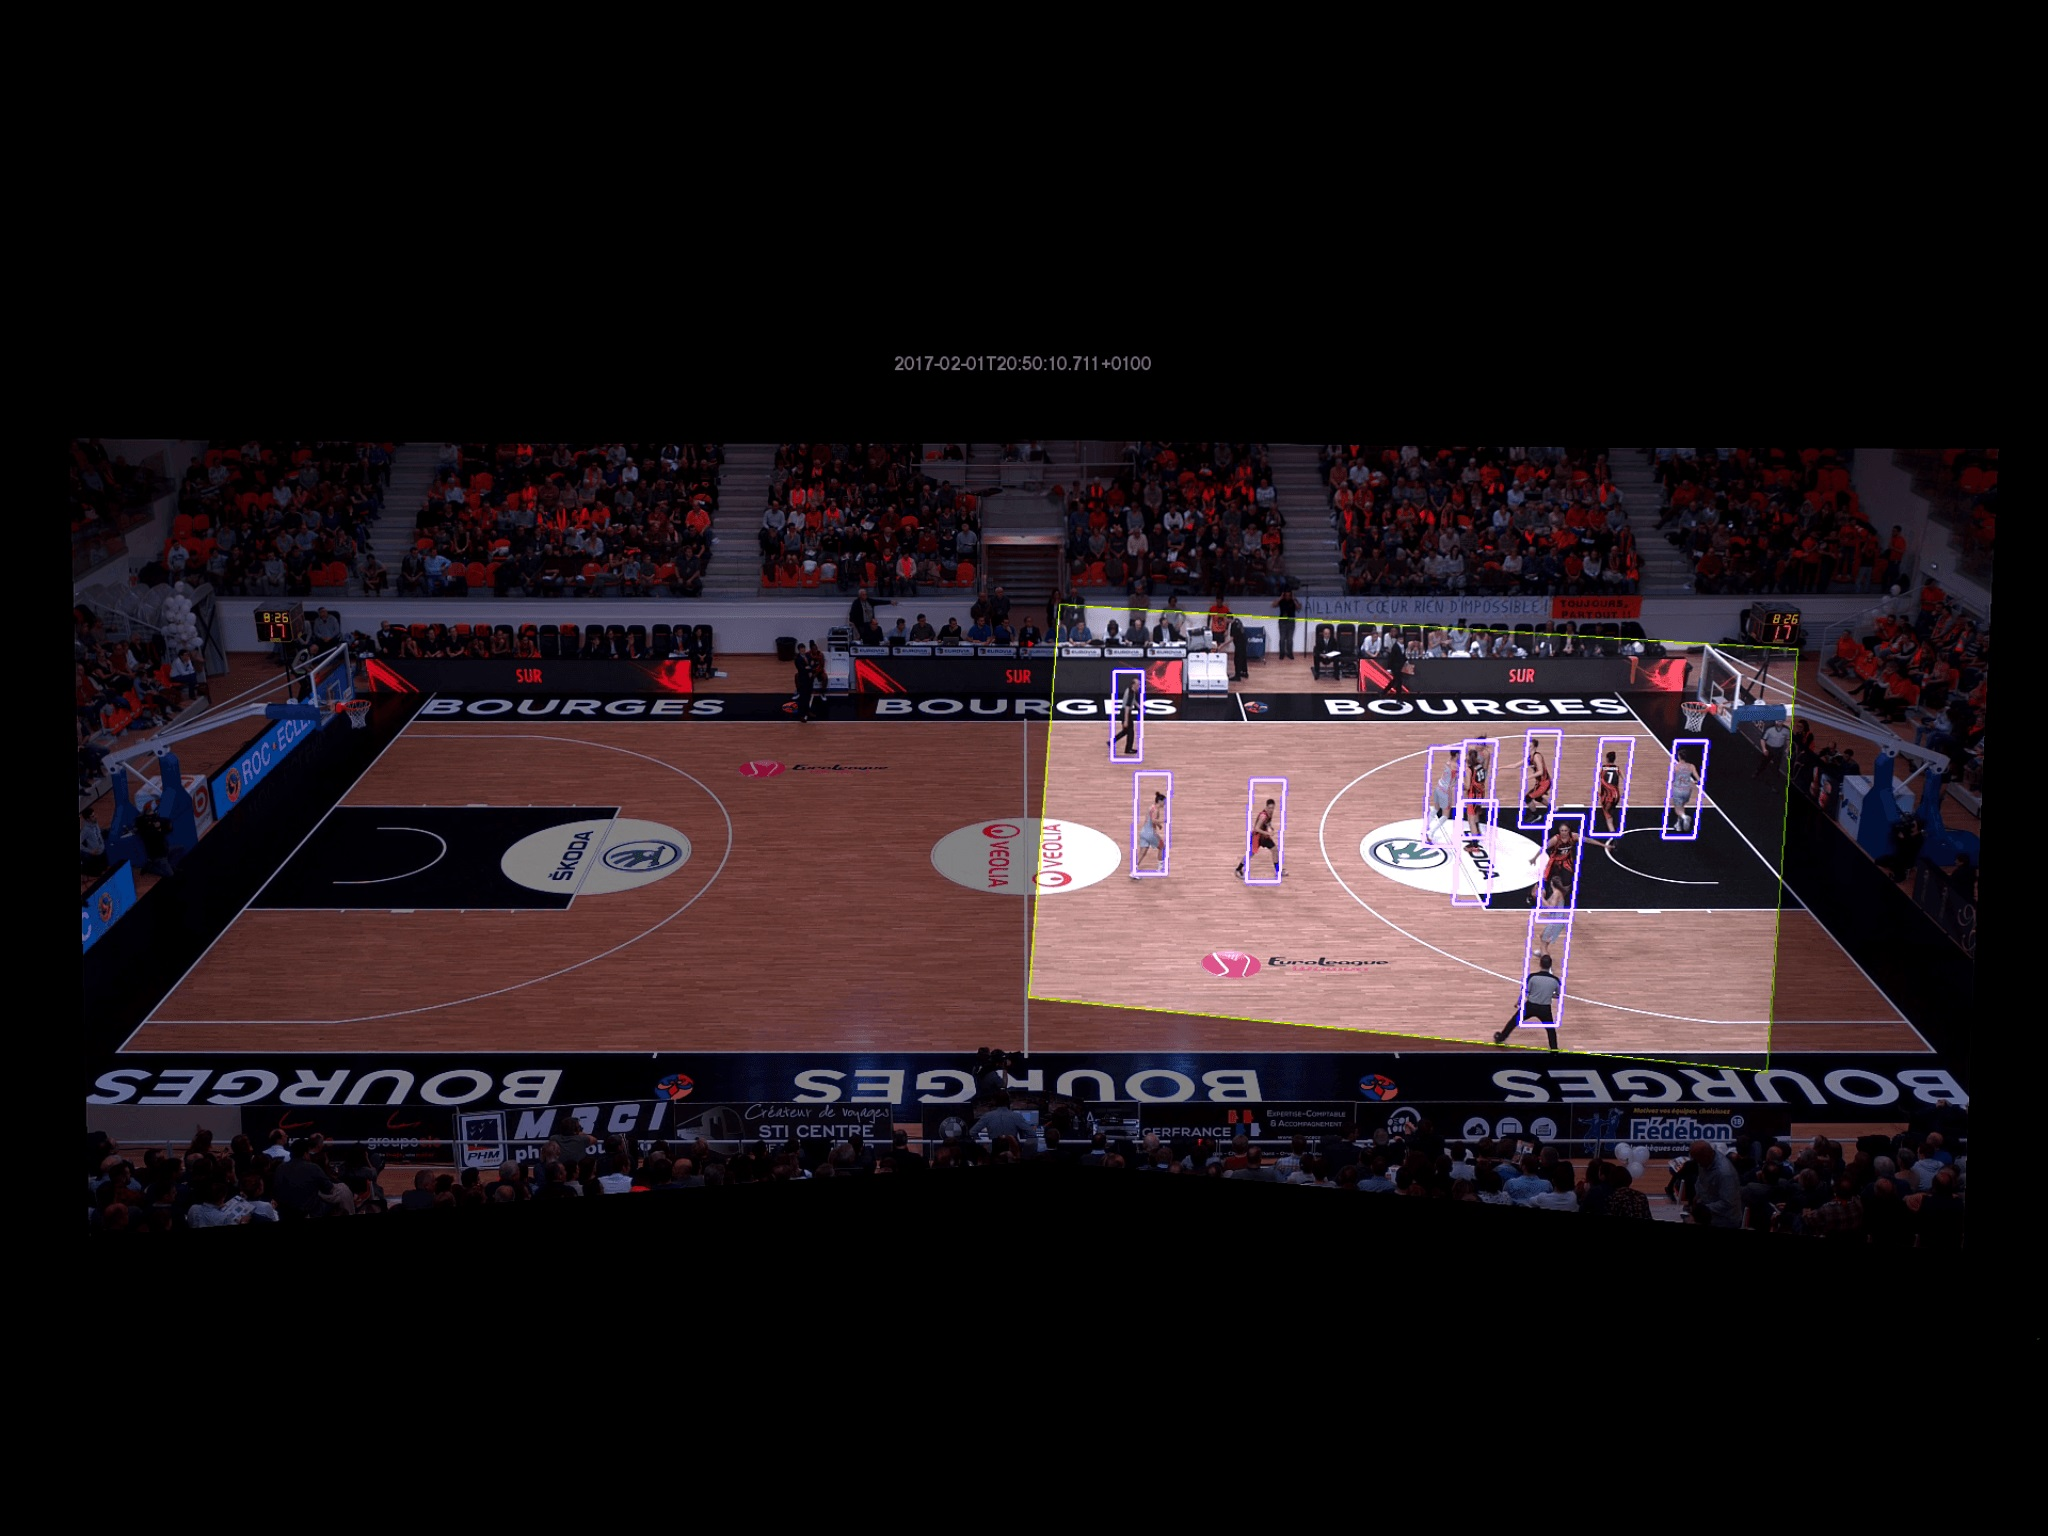 Il basket universitario diventa più intelligente grazie all'AI thumbnail